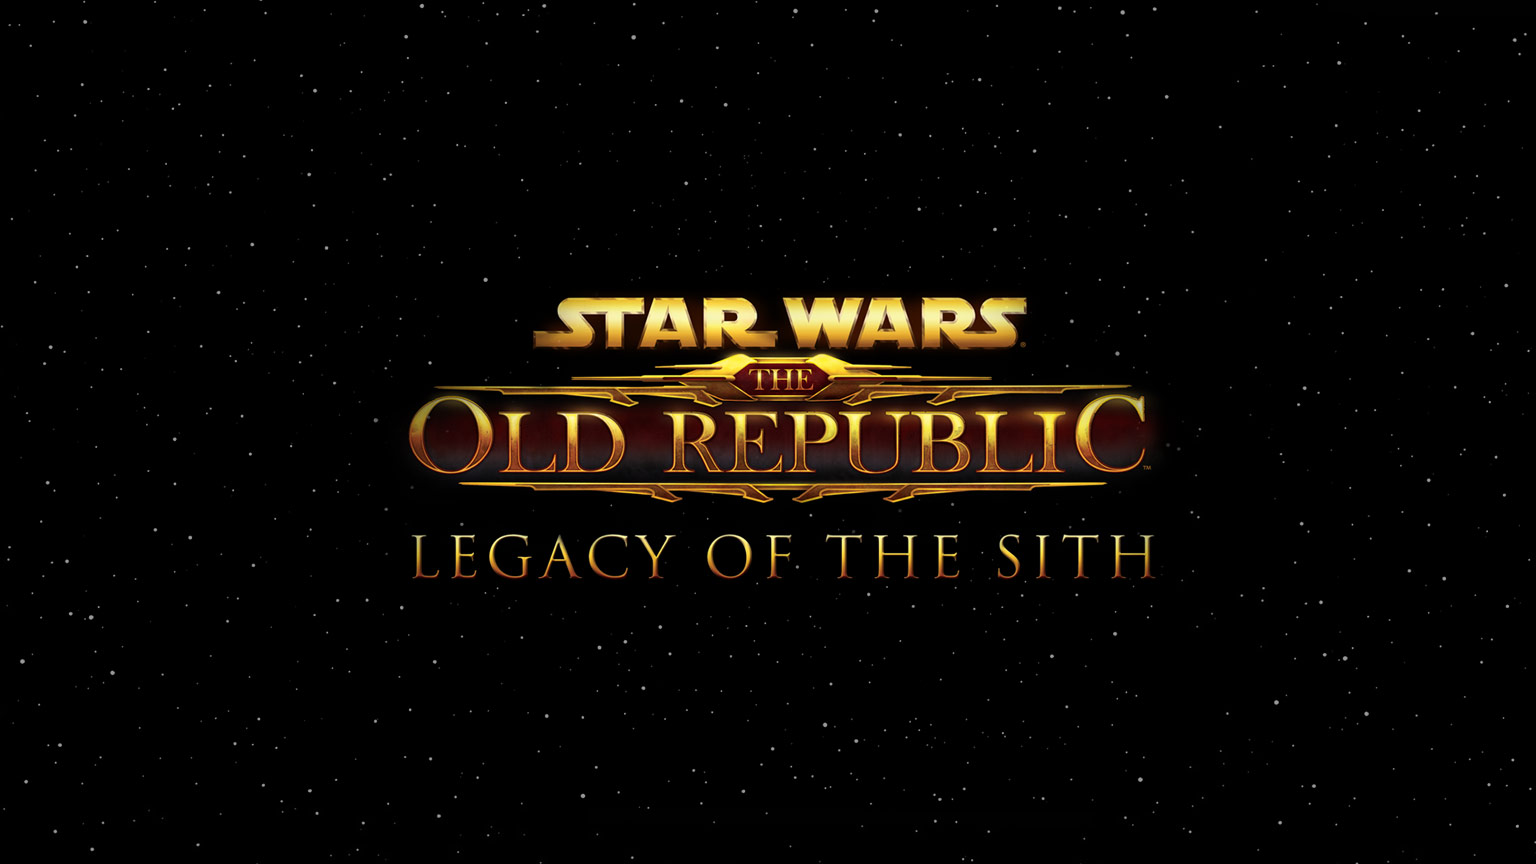 Star Wars: The Old Republic Legacy of The Sith logo